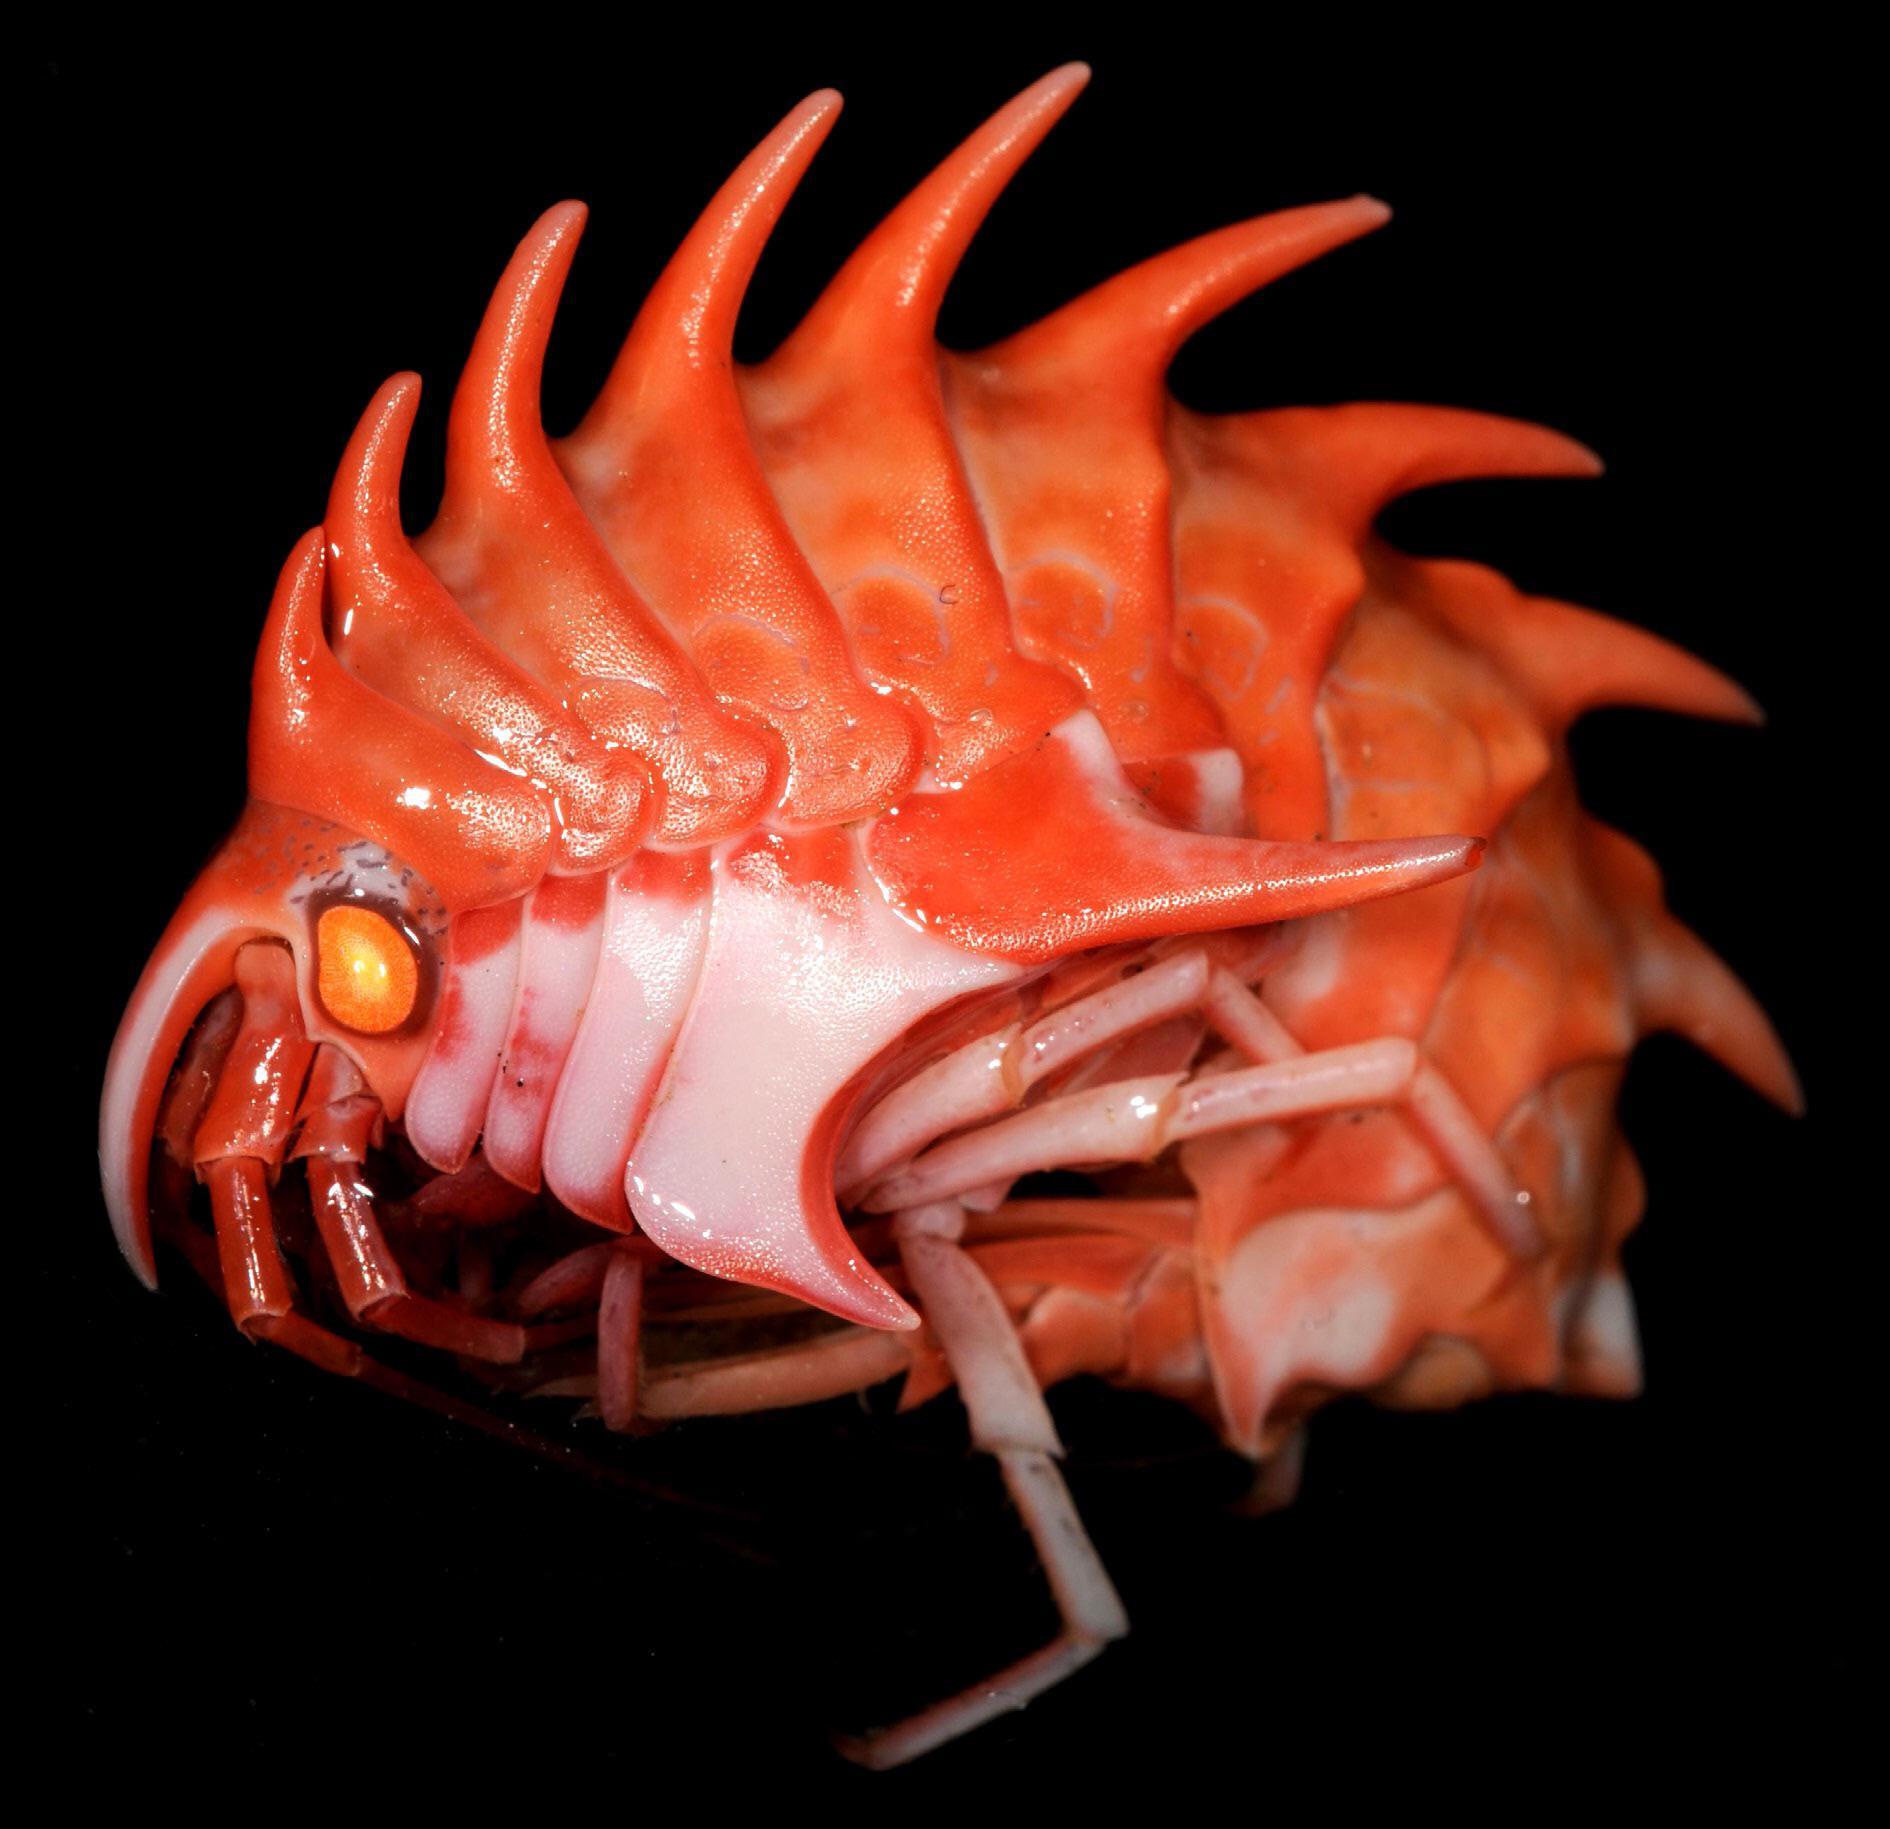 The Antarctic Amphipod is one of the most alien creatures to inhabit the depths below